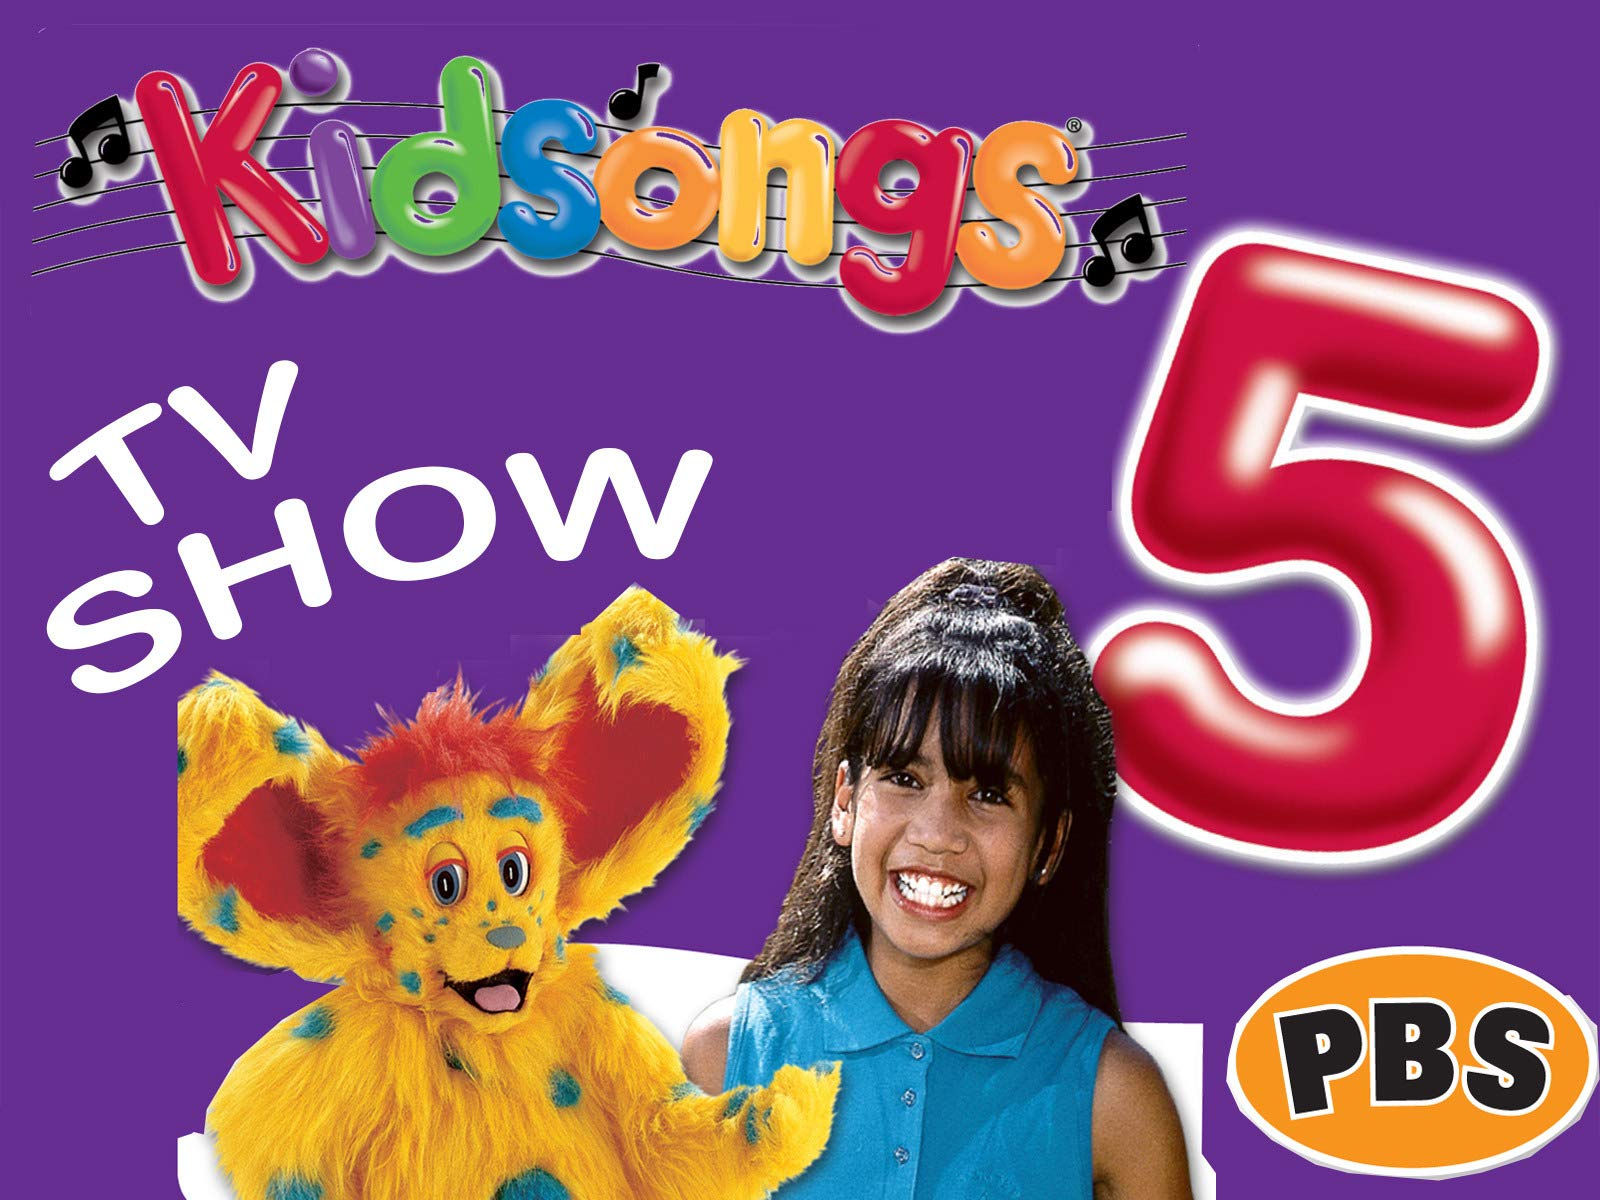 Kidsongs - Season 5